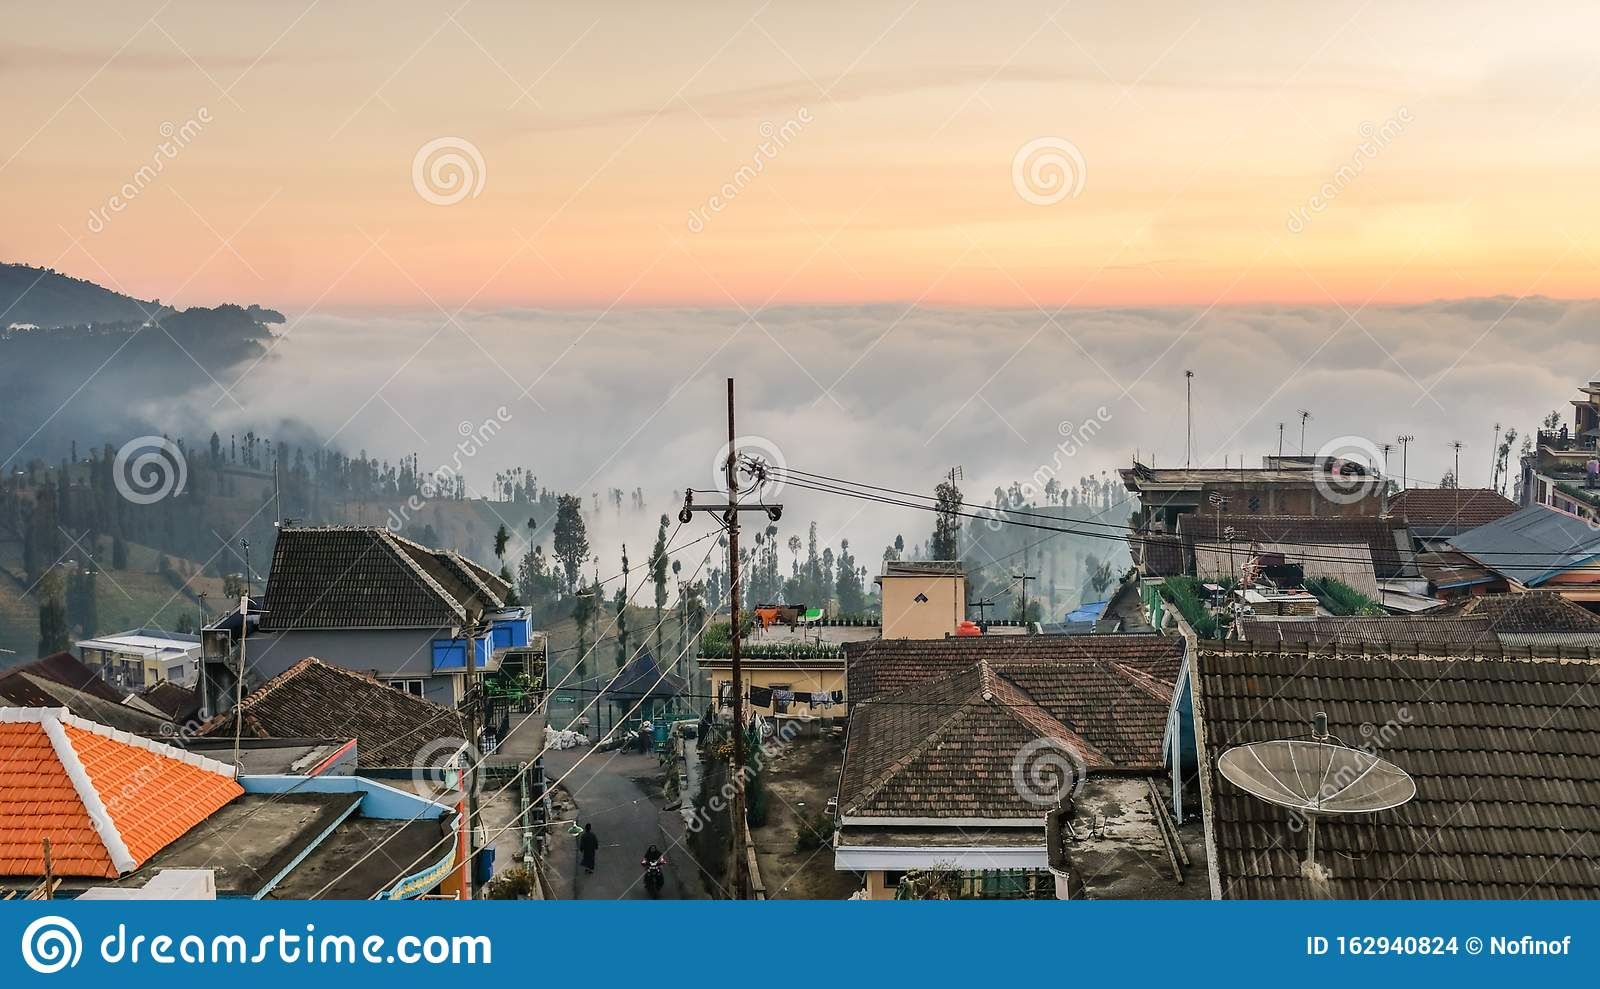 Sunset In Ngadas Malang East Java Indonesia Editorial Stock Image Image Of View Hill 162940824